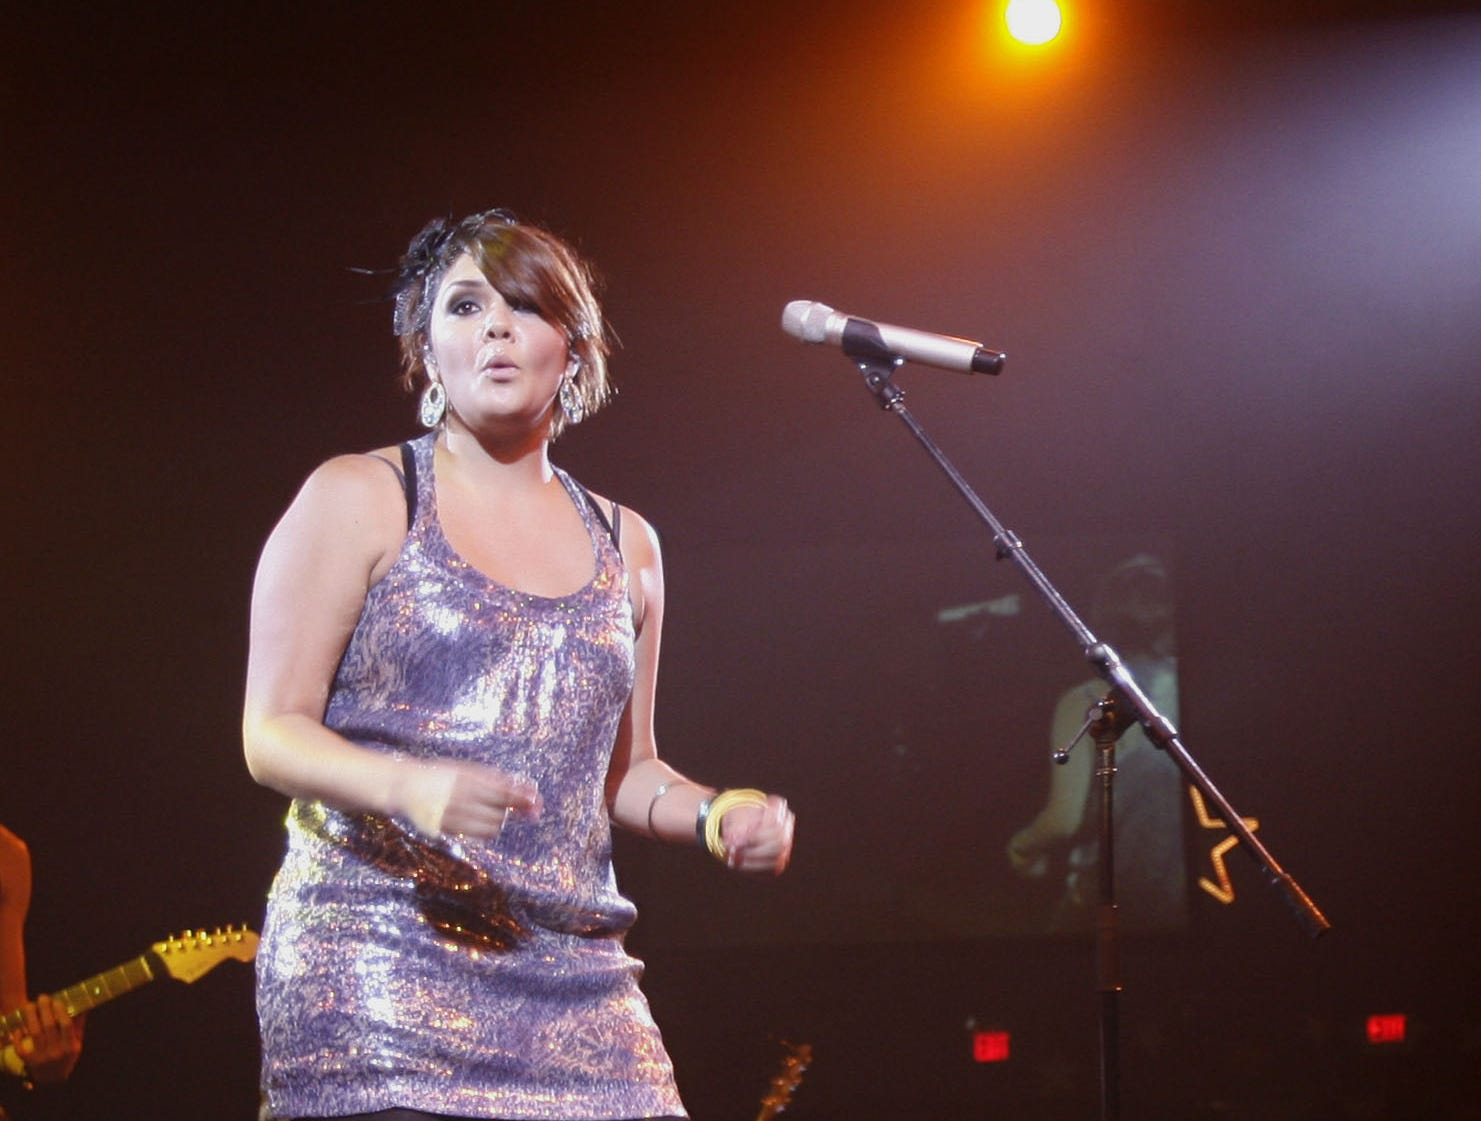 Yuridia performs at the Celebrity Theatre on Sept. 5, 2009. It's the former Mesa High School student's first performance in the Valley as a headliner.